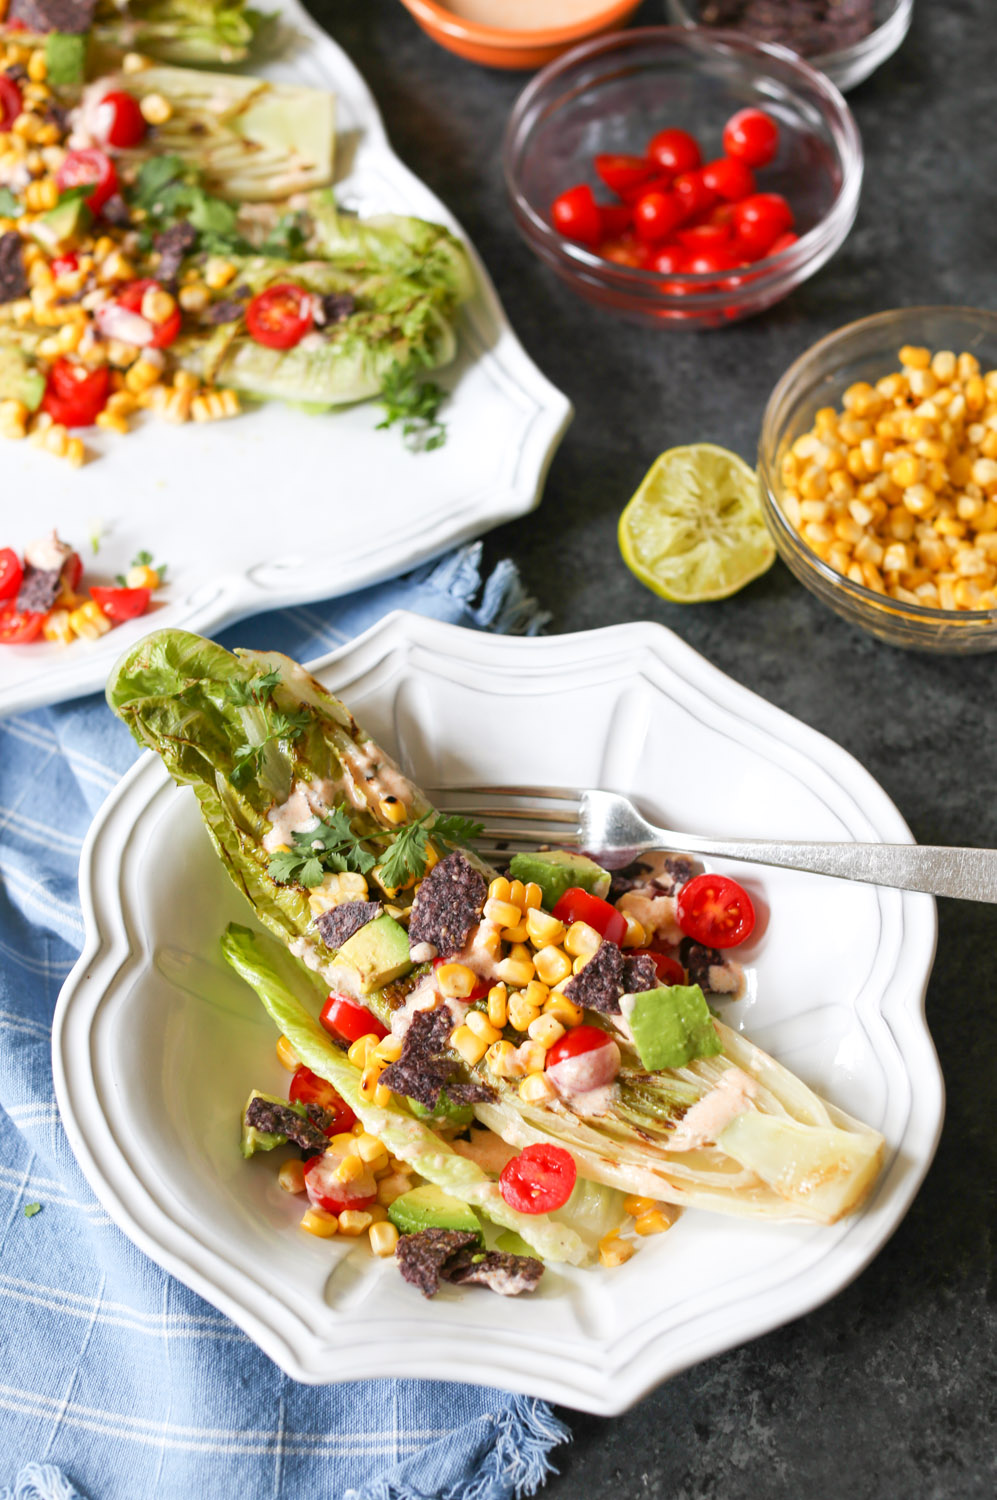 Fiesta Summer Salad with Grilled Romaine